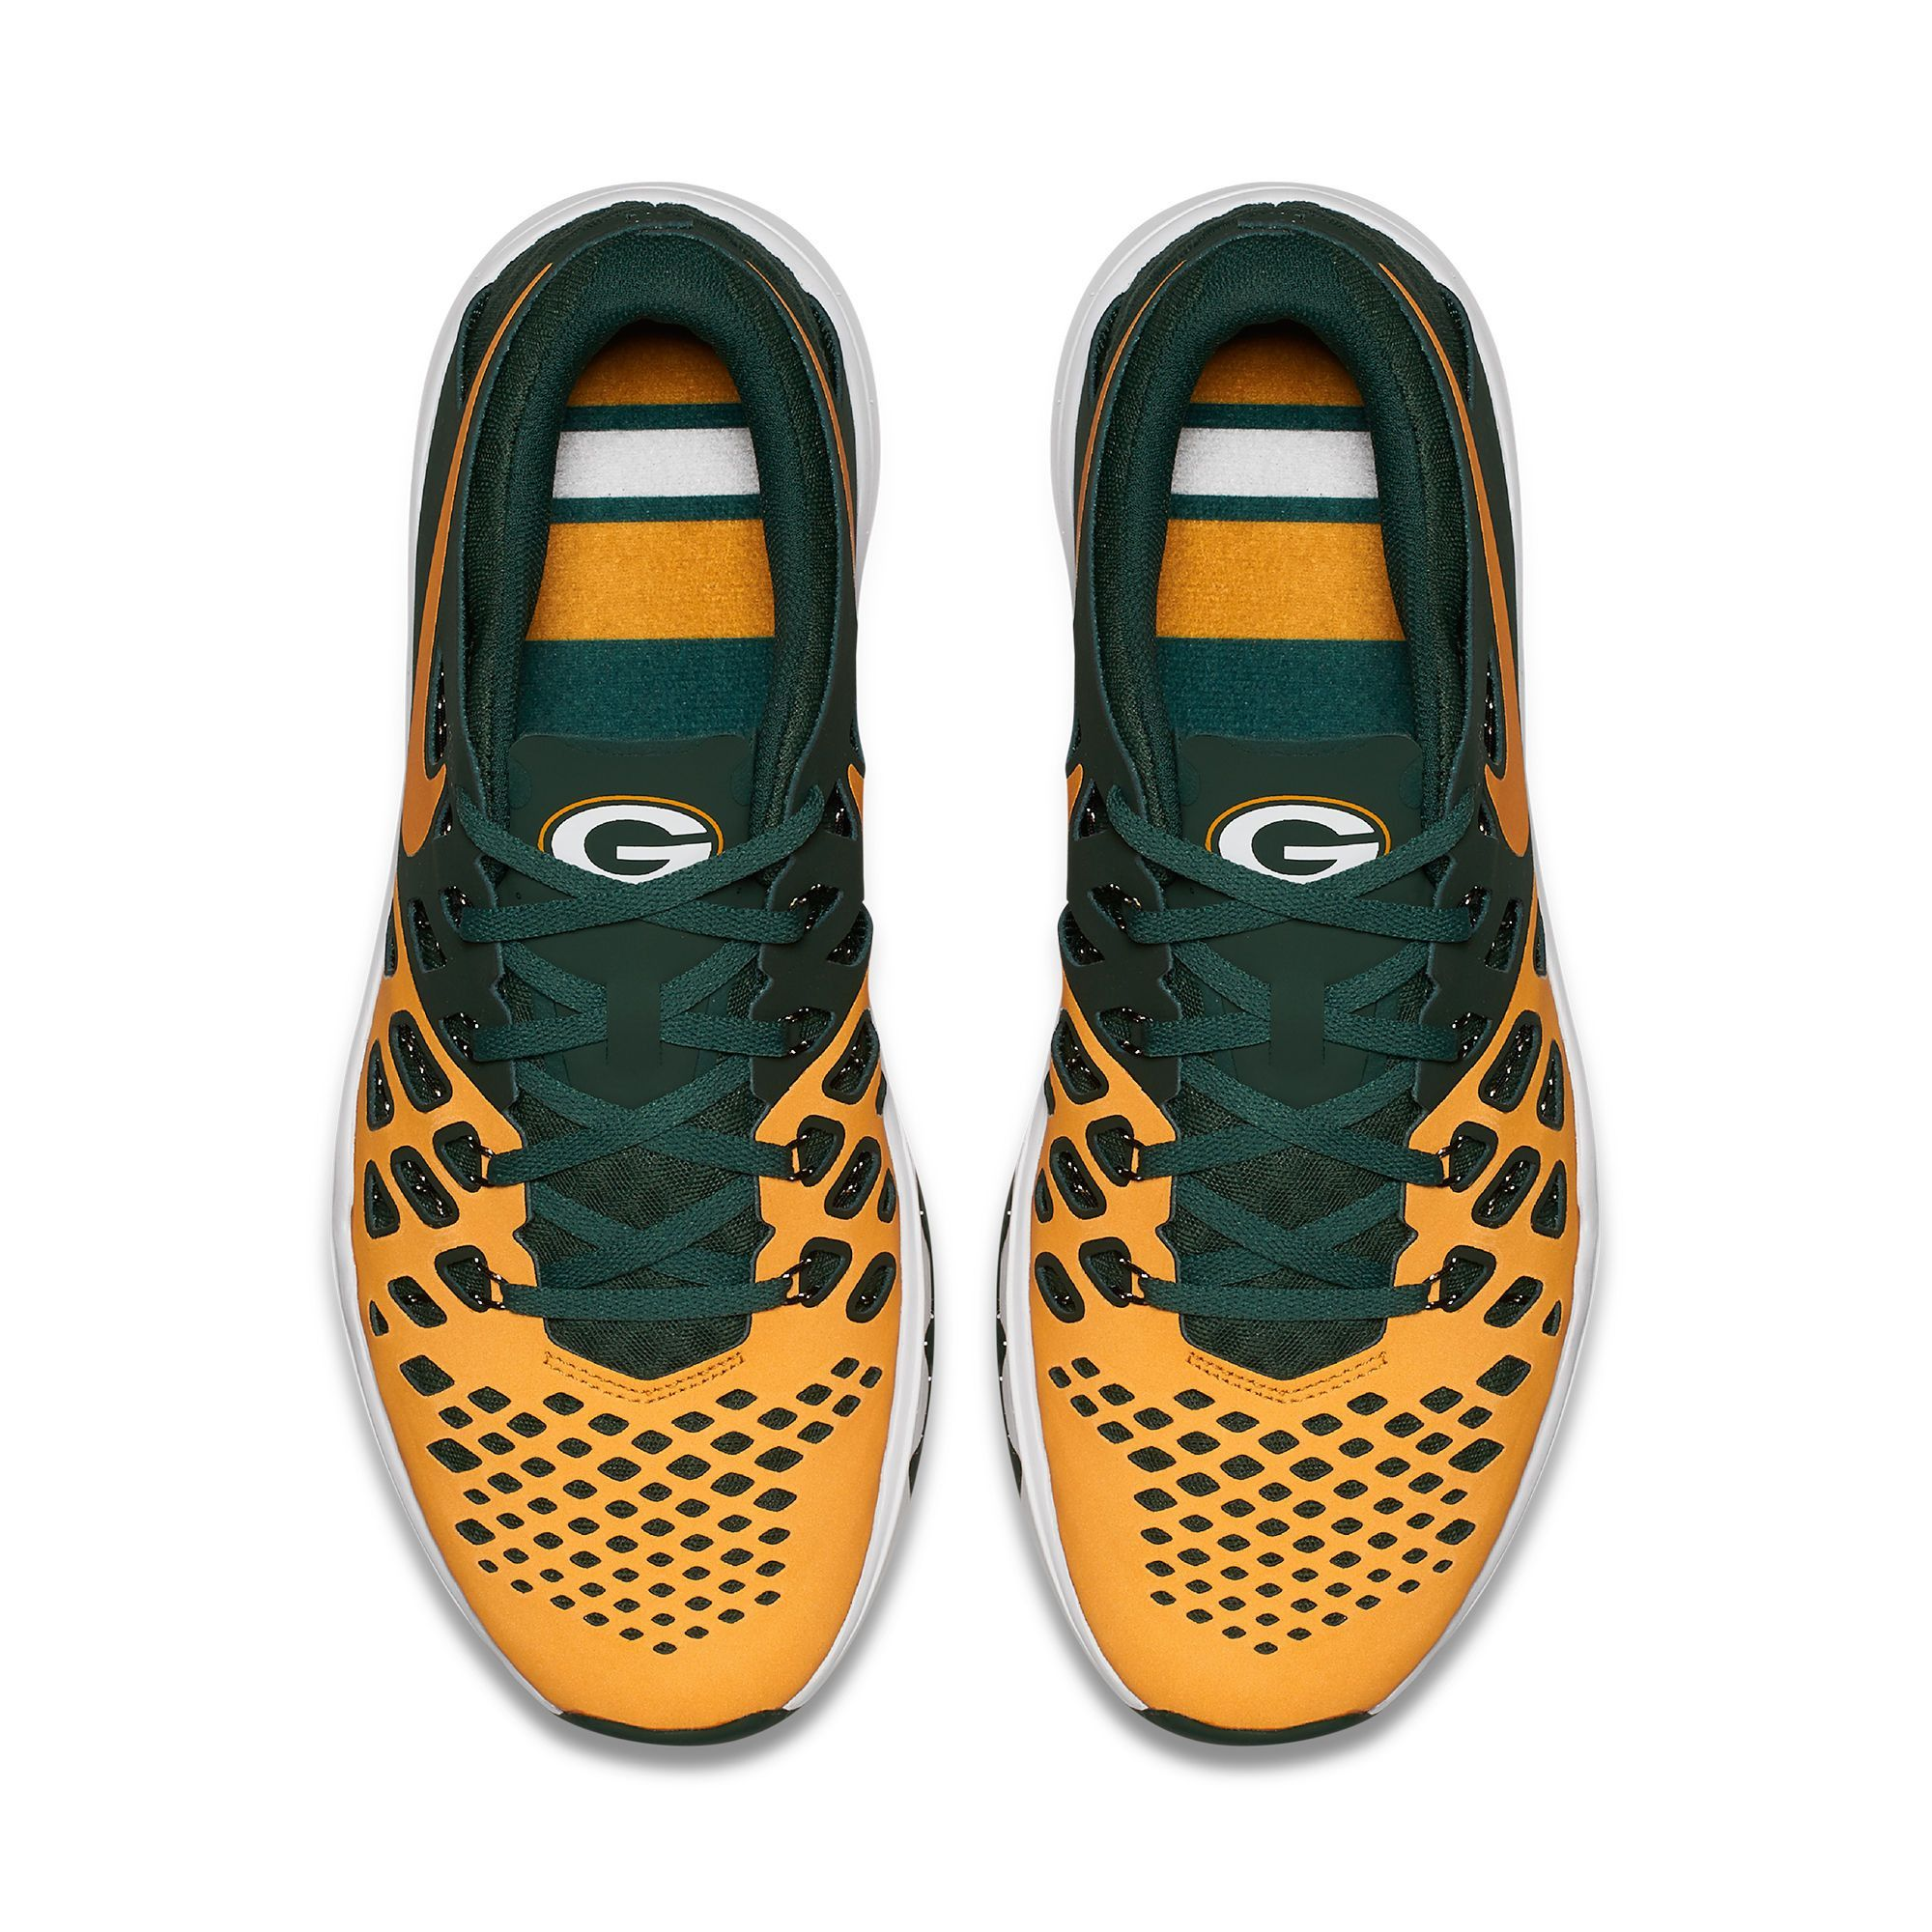 Green Bay Packers Nike Train Speed 4 Nfl Shoes Nfl Shoes Running Shoes For Men Packers